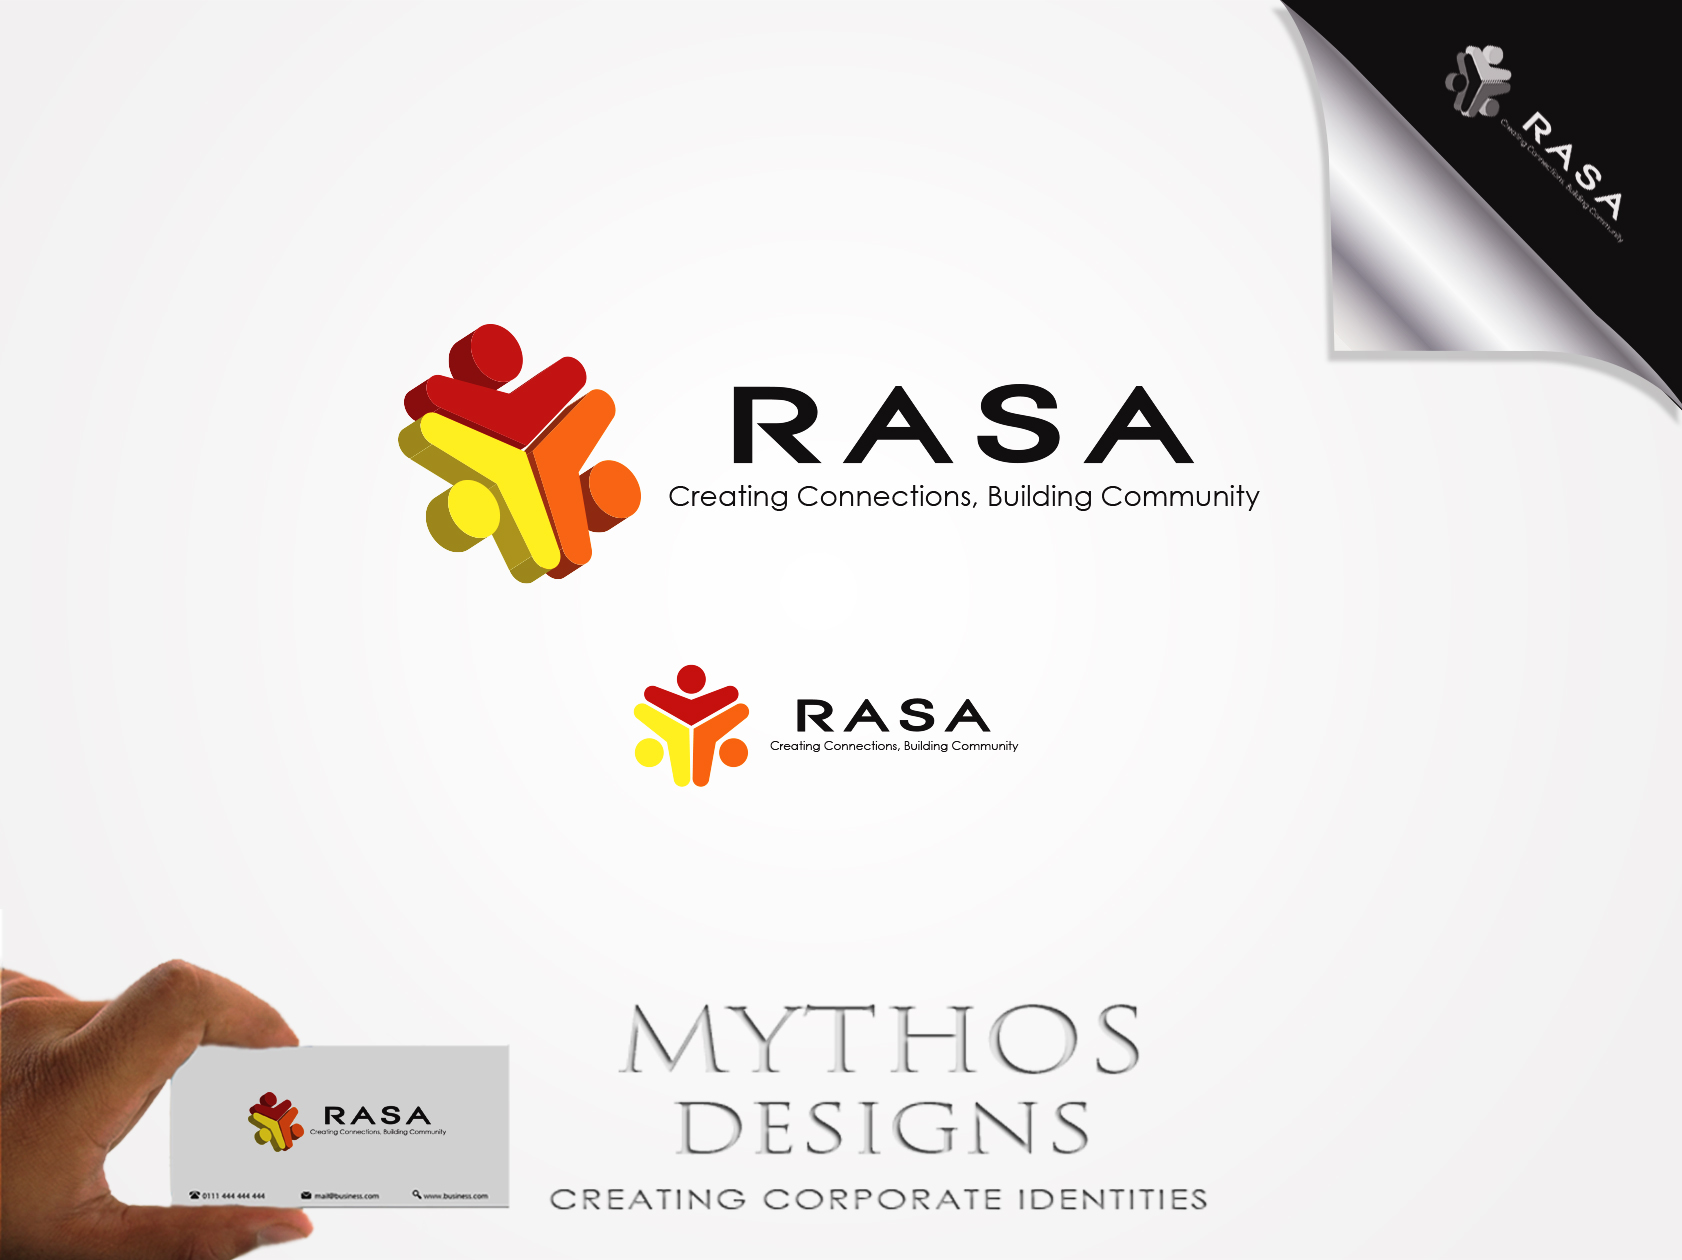 Logo Design by Mythos Designs - Entry No. 46 in the Logo Design Contest New Logo Design for RASA - Richmond Association of School Administrato.